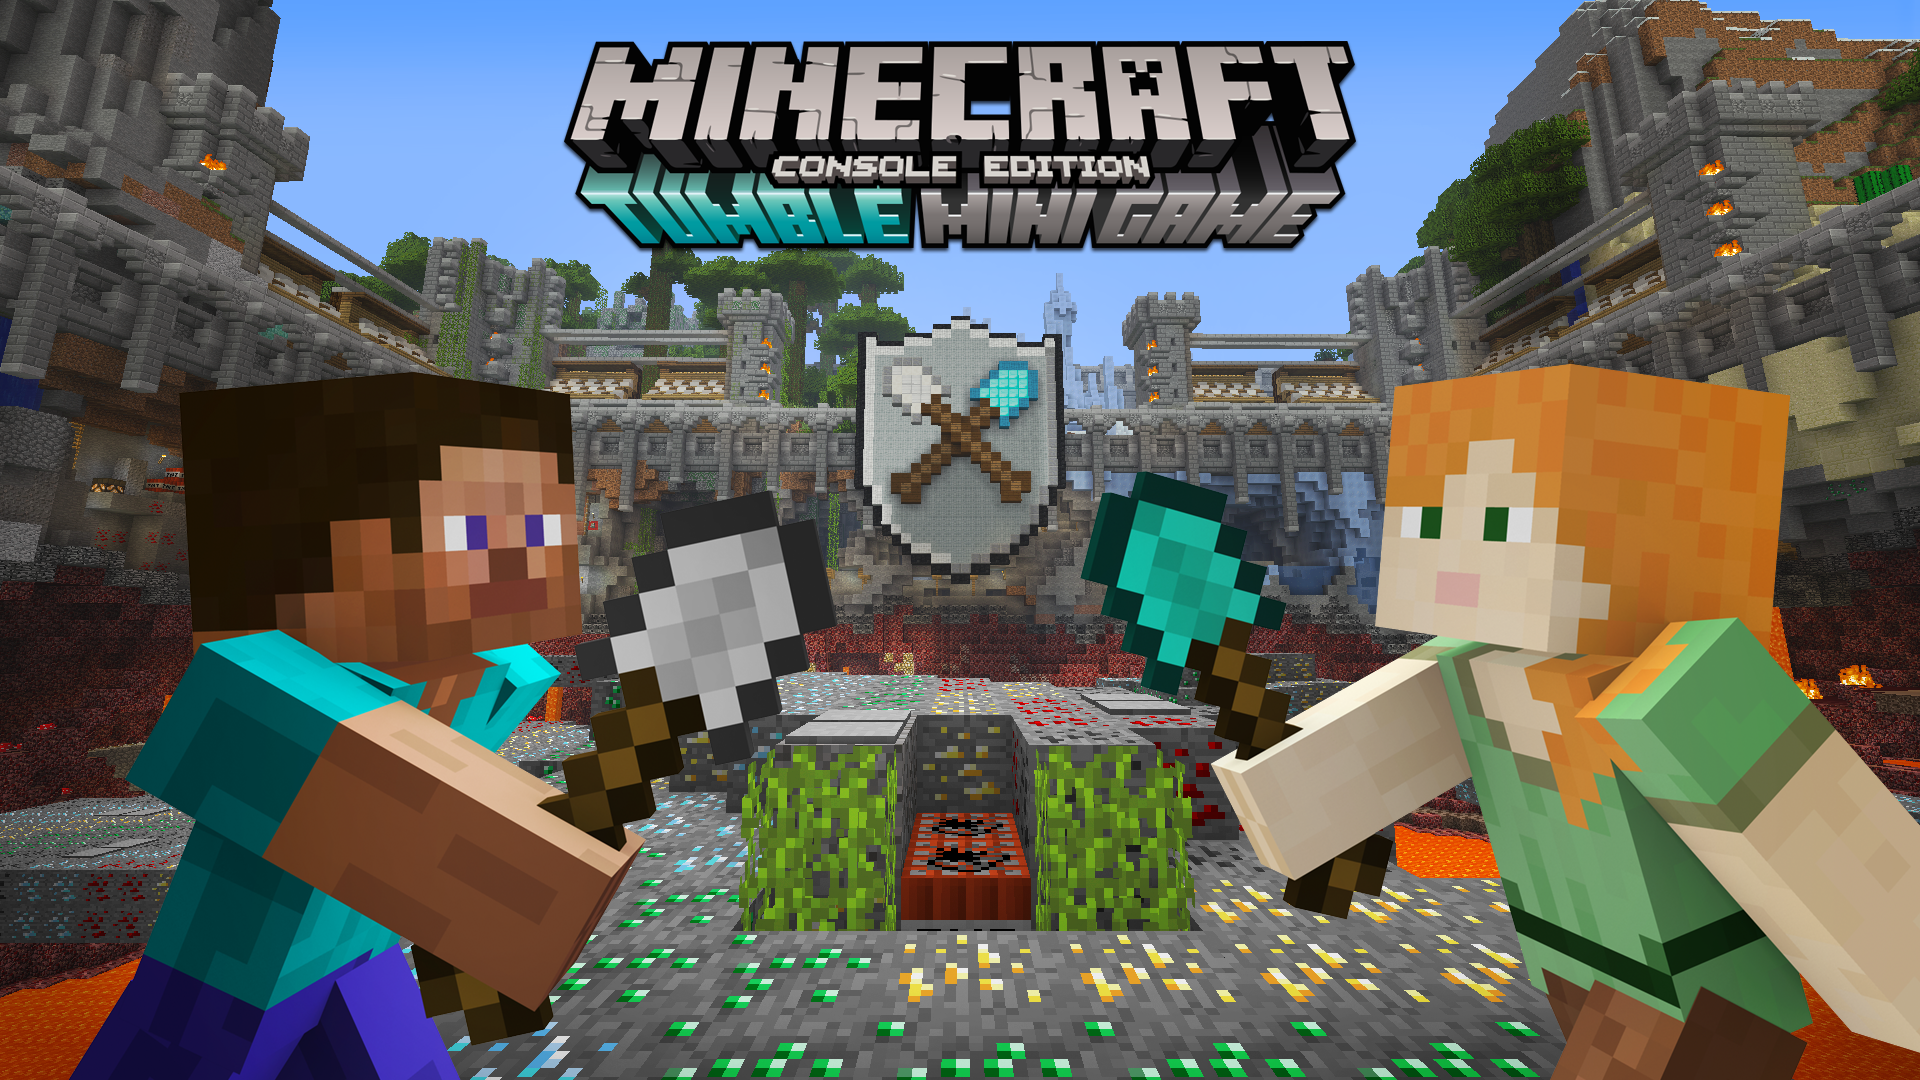 Minecraft gets a deadly minigame on consoles for free